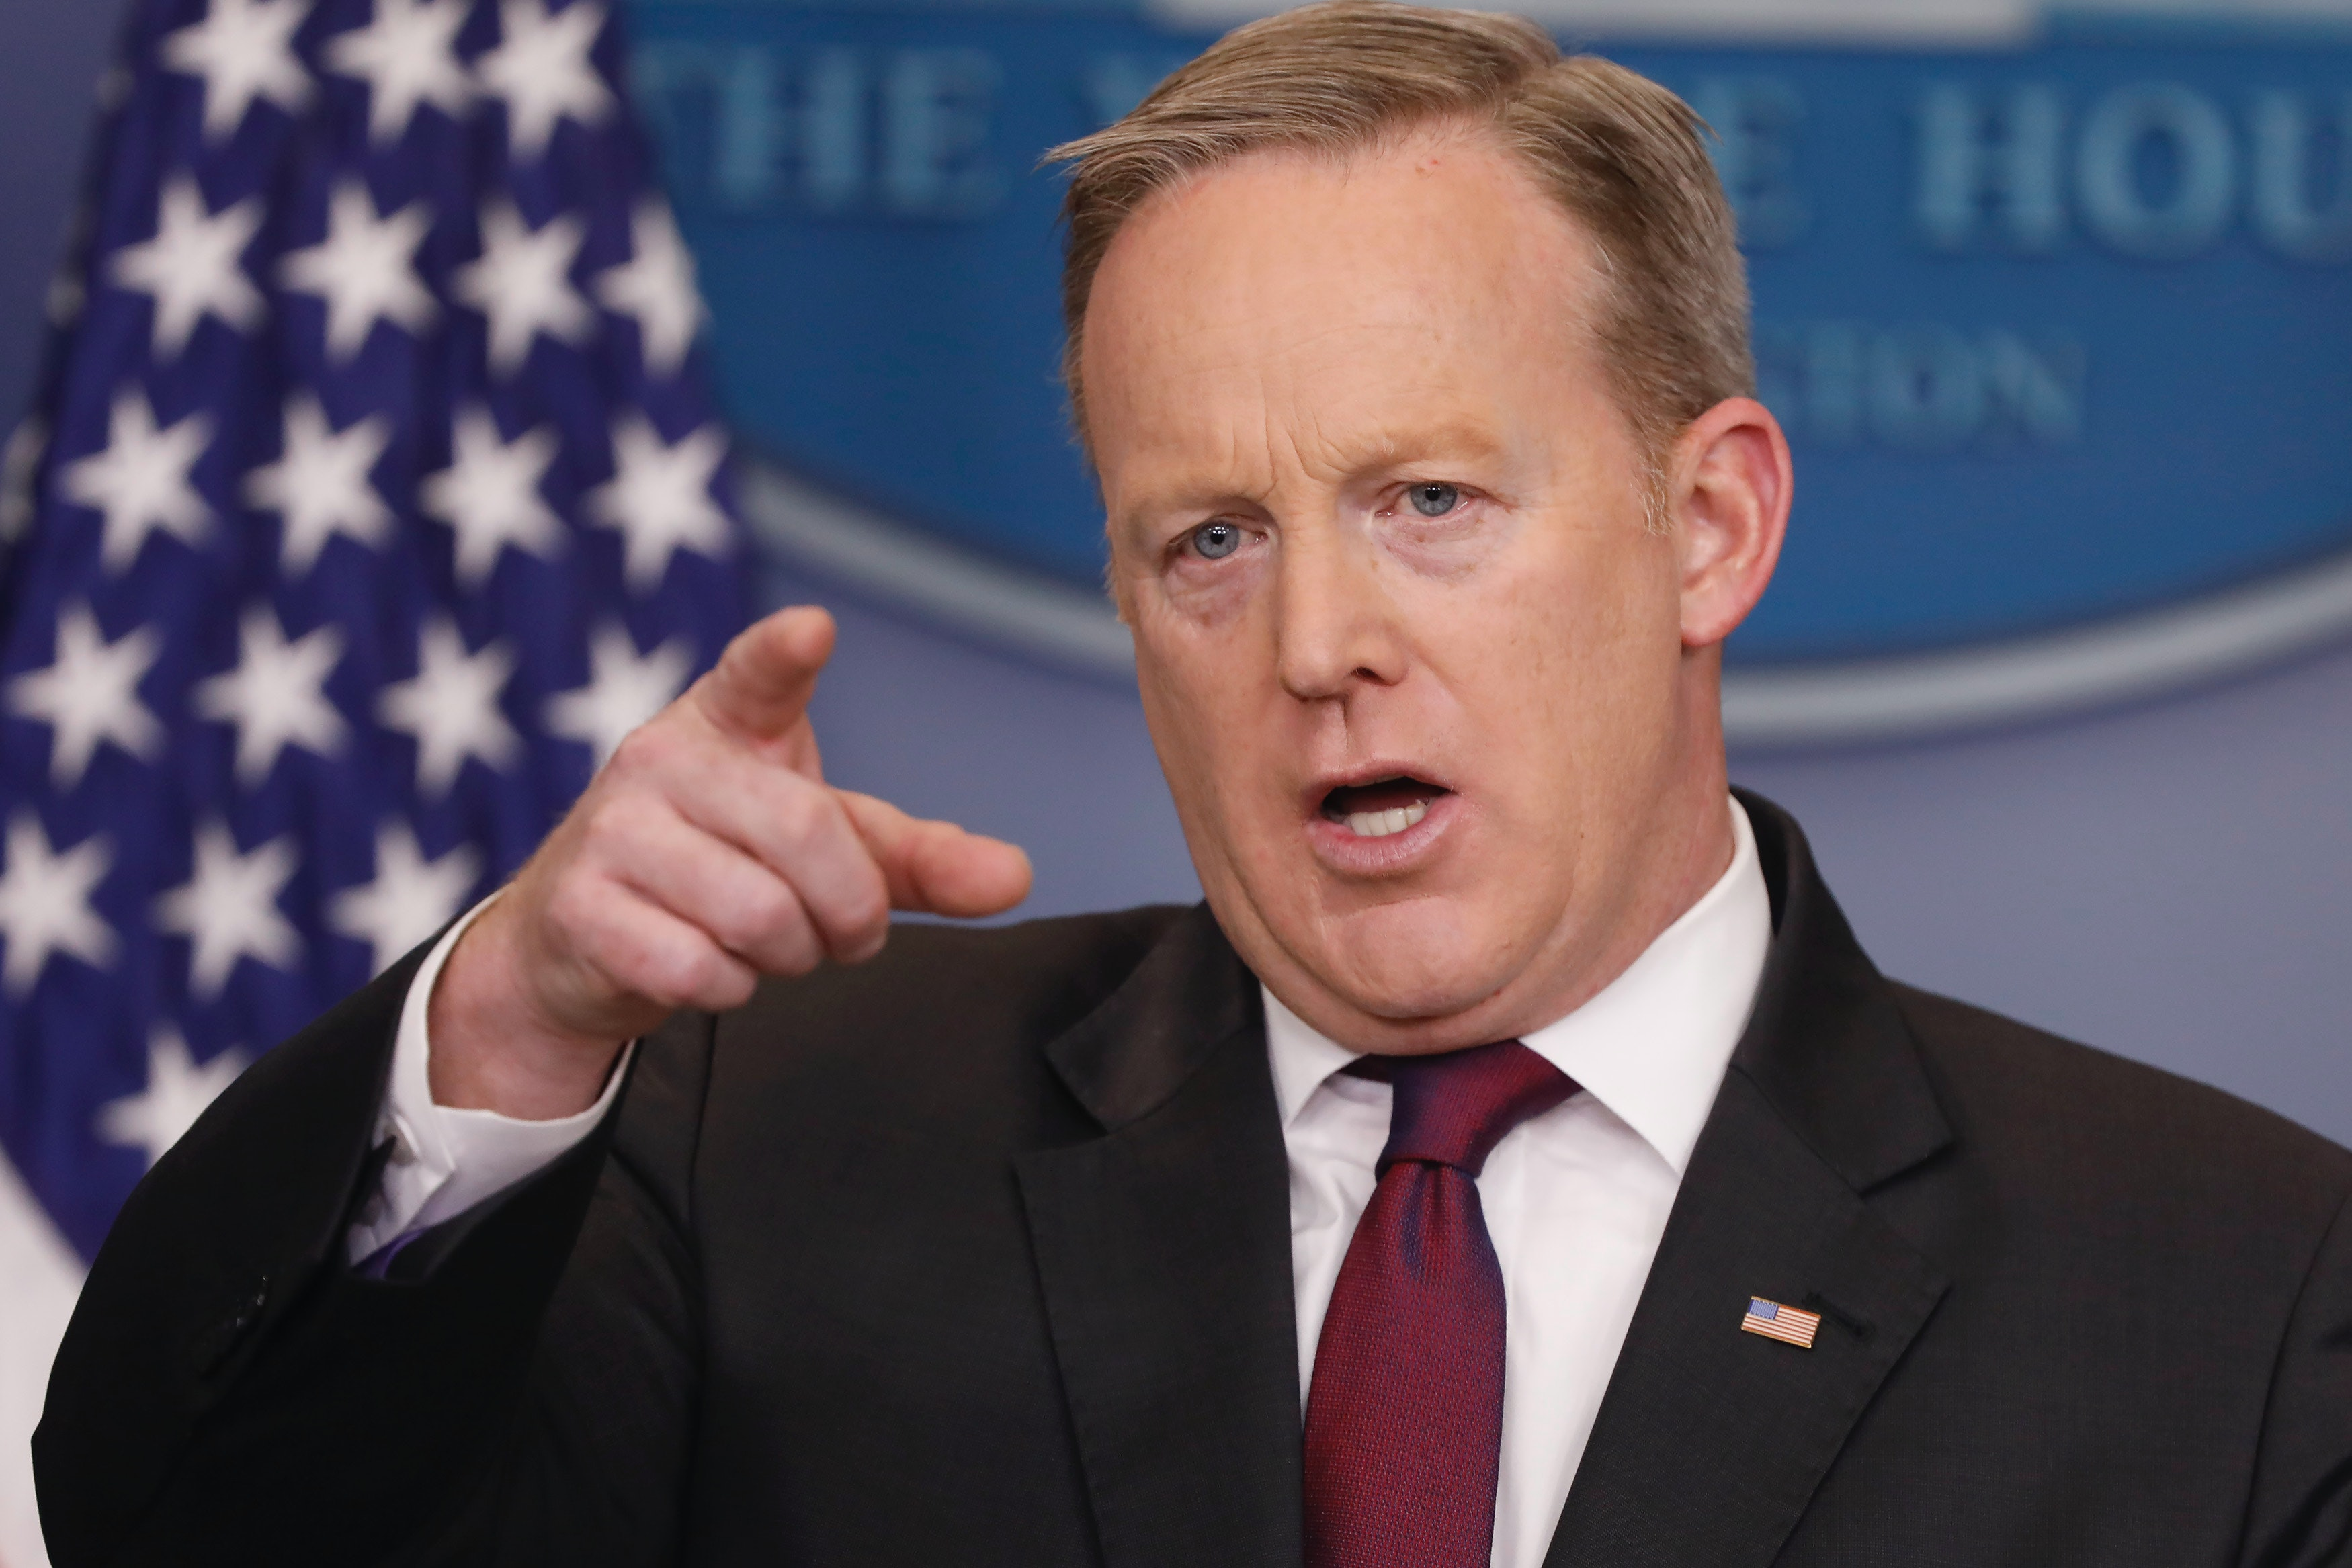 White House Bans Major News Outlets From Press Briefing